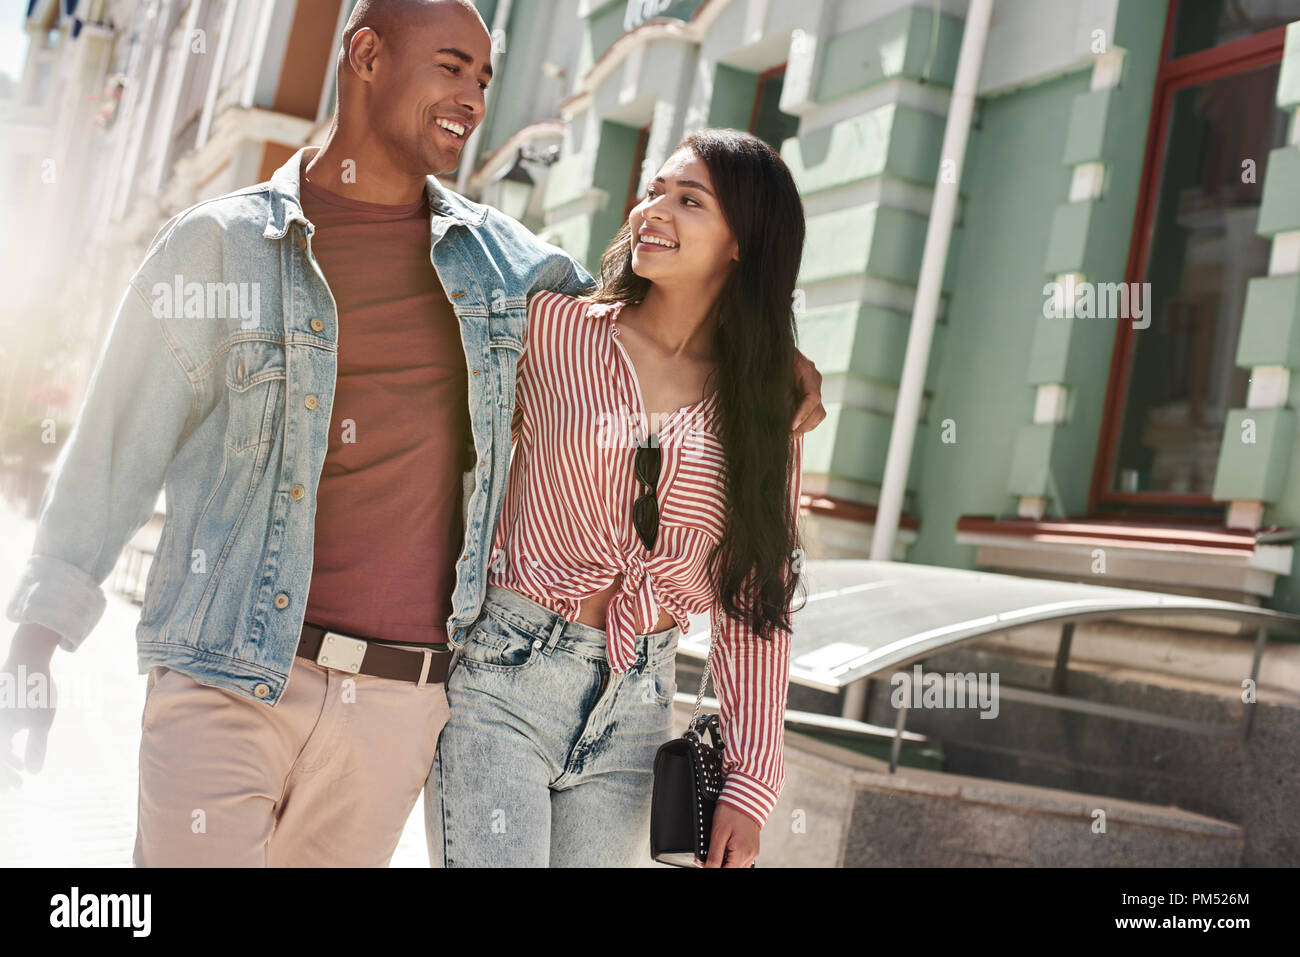 Romantic Relationship. Young diverse couple walking on the city street hugging looking at each other talking smiling happy Stock Photo